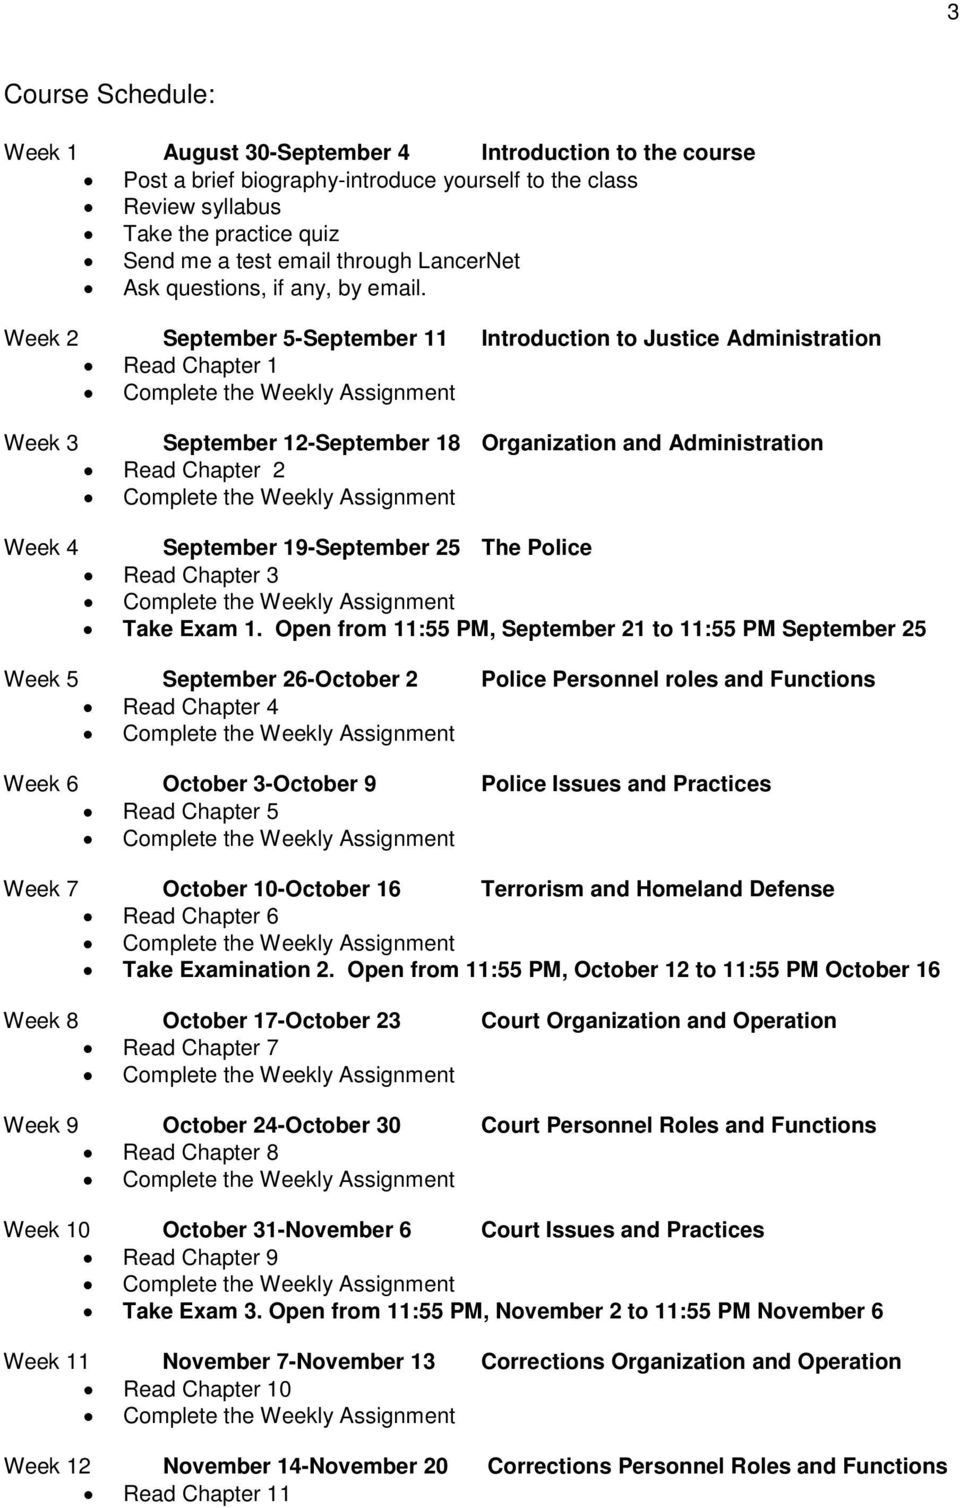 Week 2 September 5-September 11 Introduction to Justice Administration Read Chapter 1 Week 3 September 12-September 18 Organization and Administration Read Chapter 2 Week 4 September 19-September 25